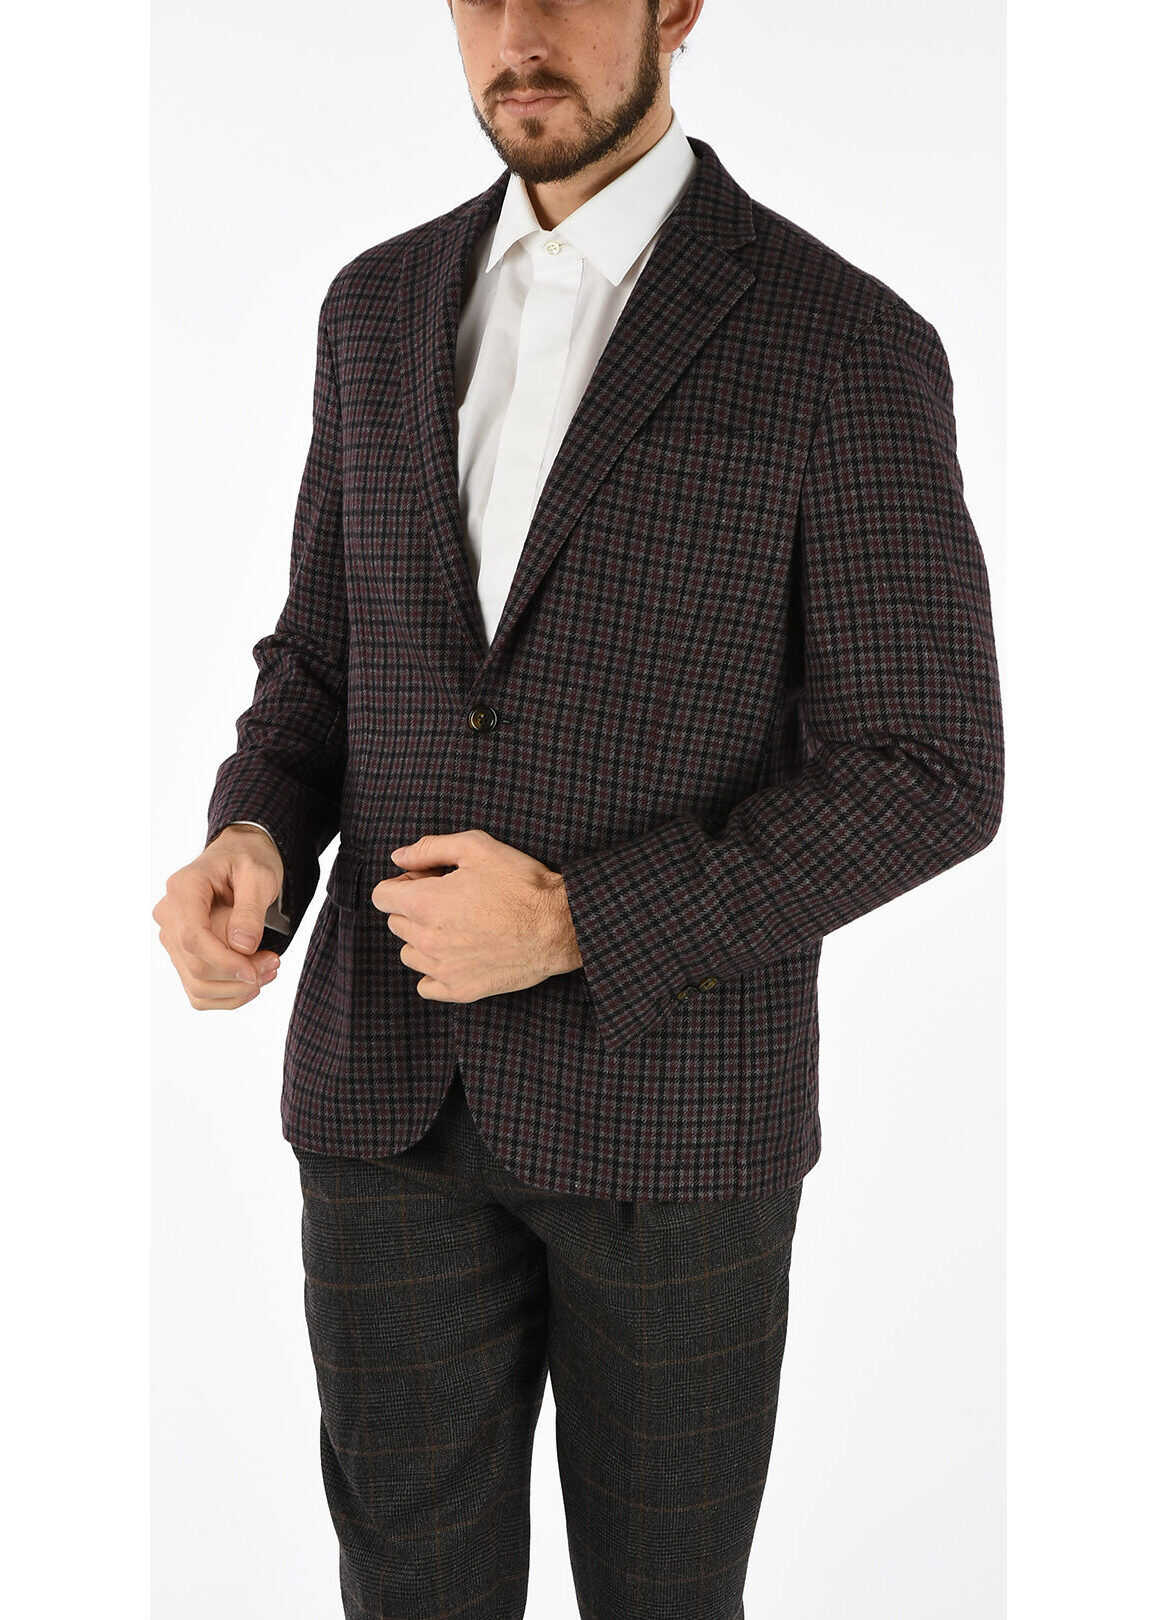 CC COLLECTION shephard's check side vents 2-button blazer thumbnail